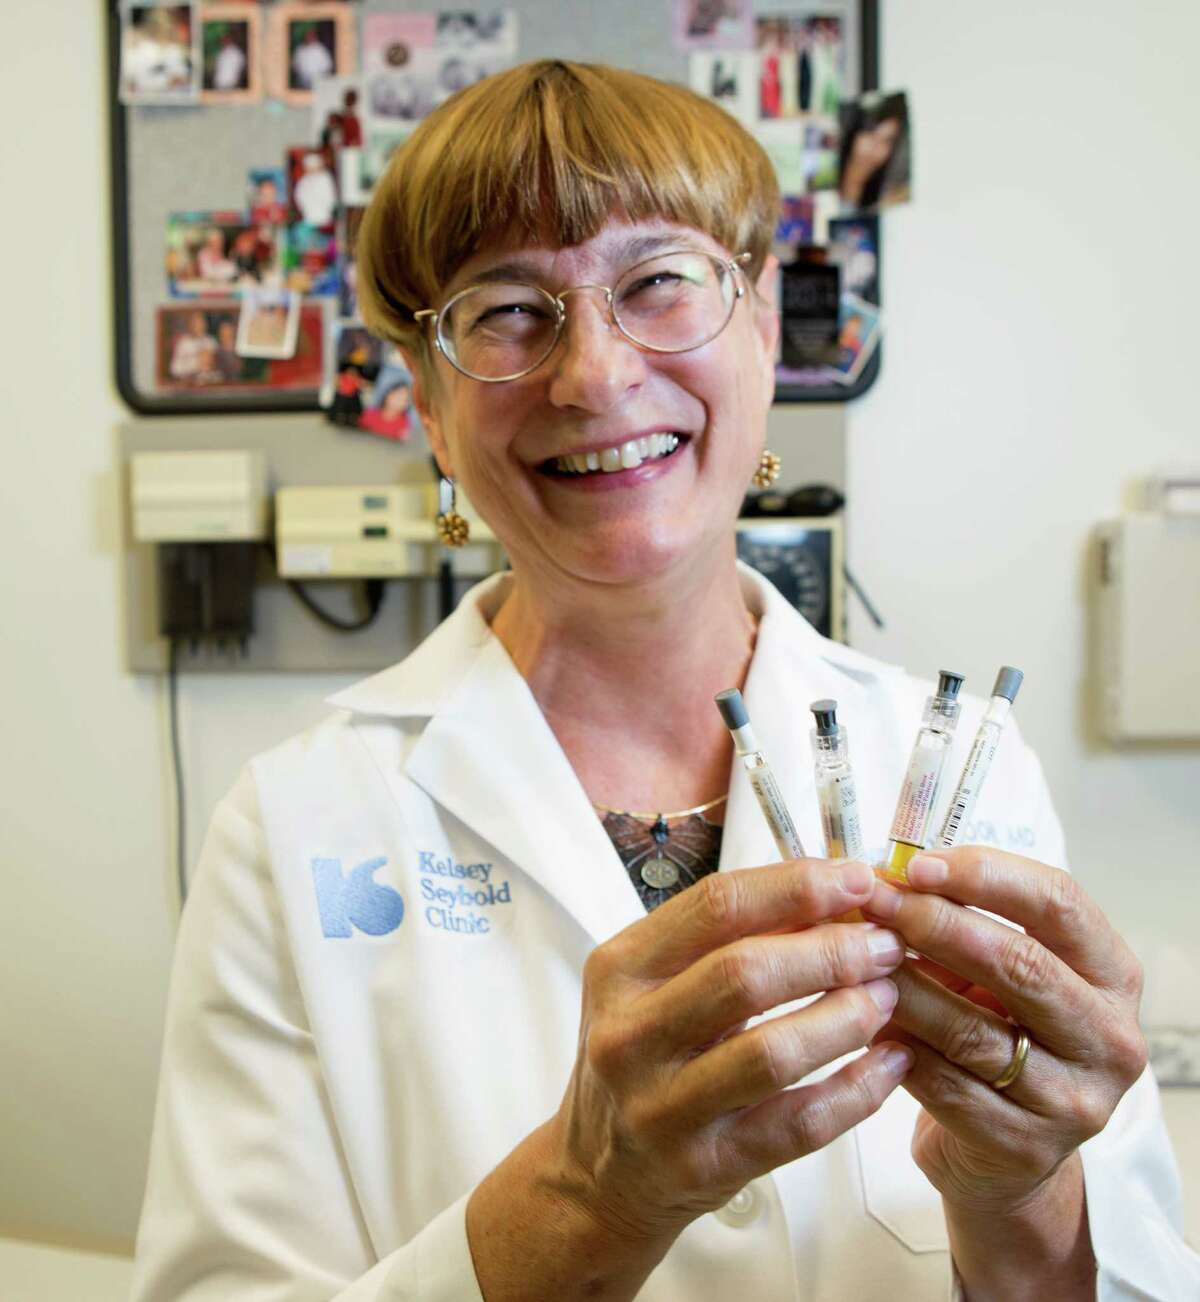 Dr. Melanie Mouzoon holds an array of vaccines at Kelsey-Seybold, Thursday, Nov. 20, 2014, in Houston. (Cody Duty / Houston Chronicle)